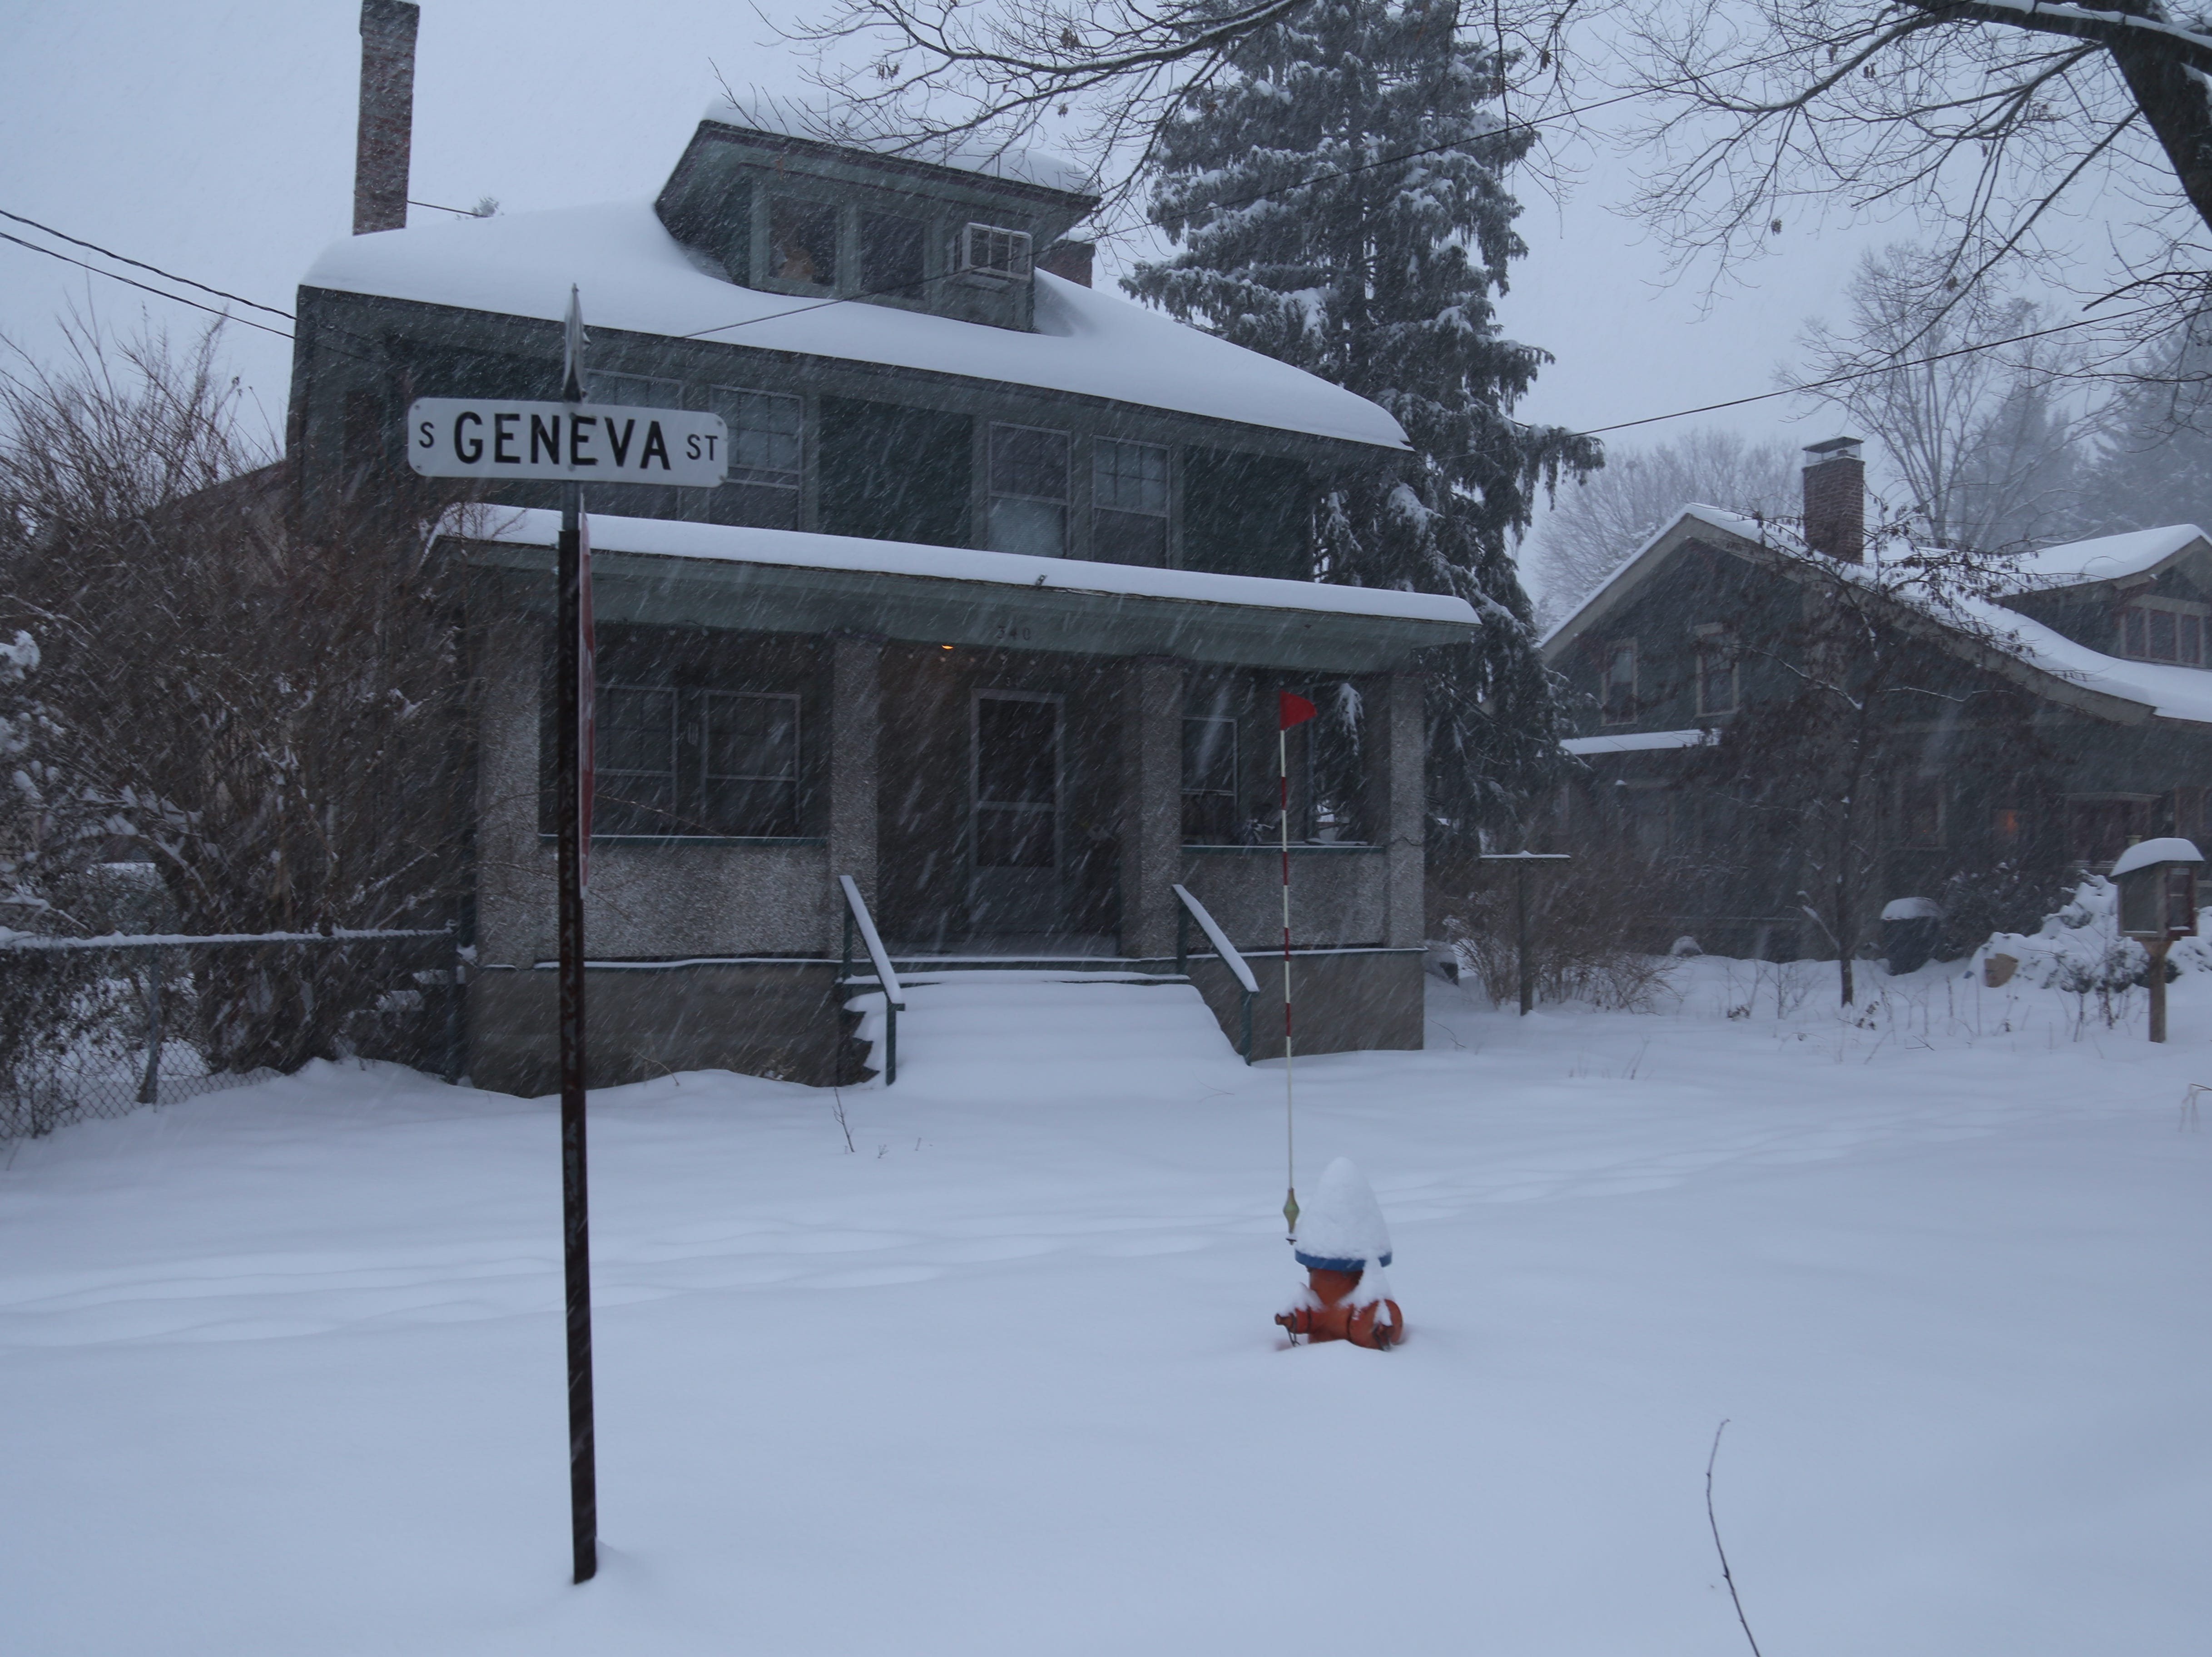 Sunday snowfall in Ithaca as a winter storm hit the Southern Tier.